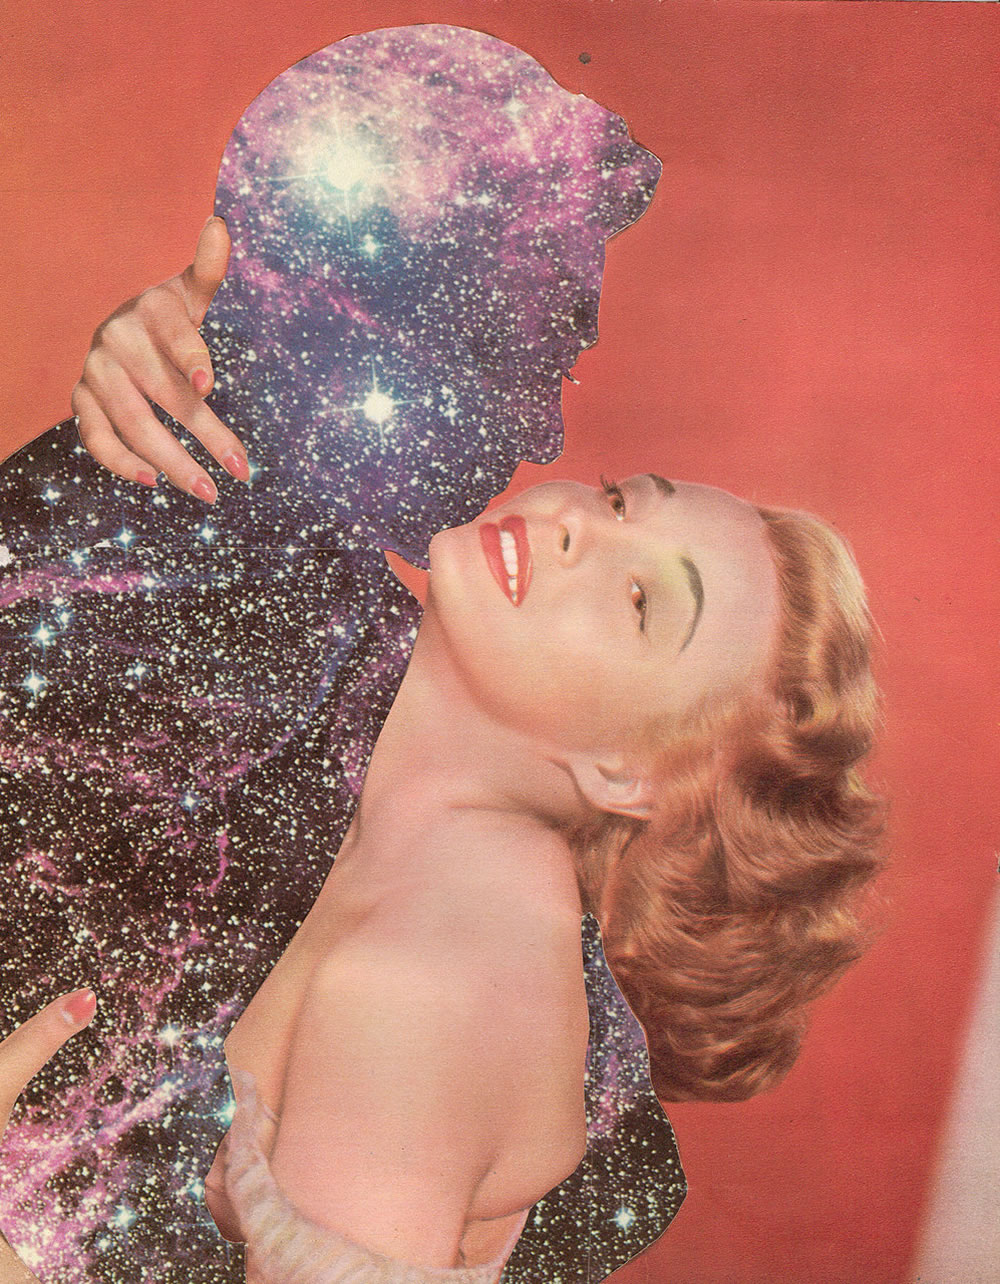 pinup girl holding galaxy man by joe webb, collage